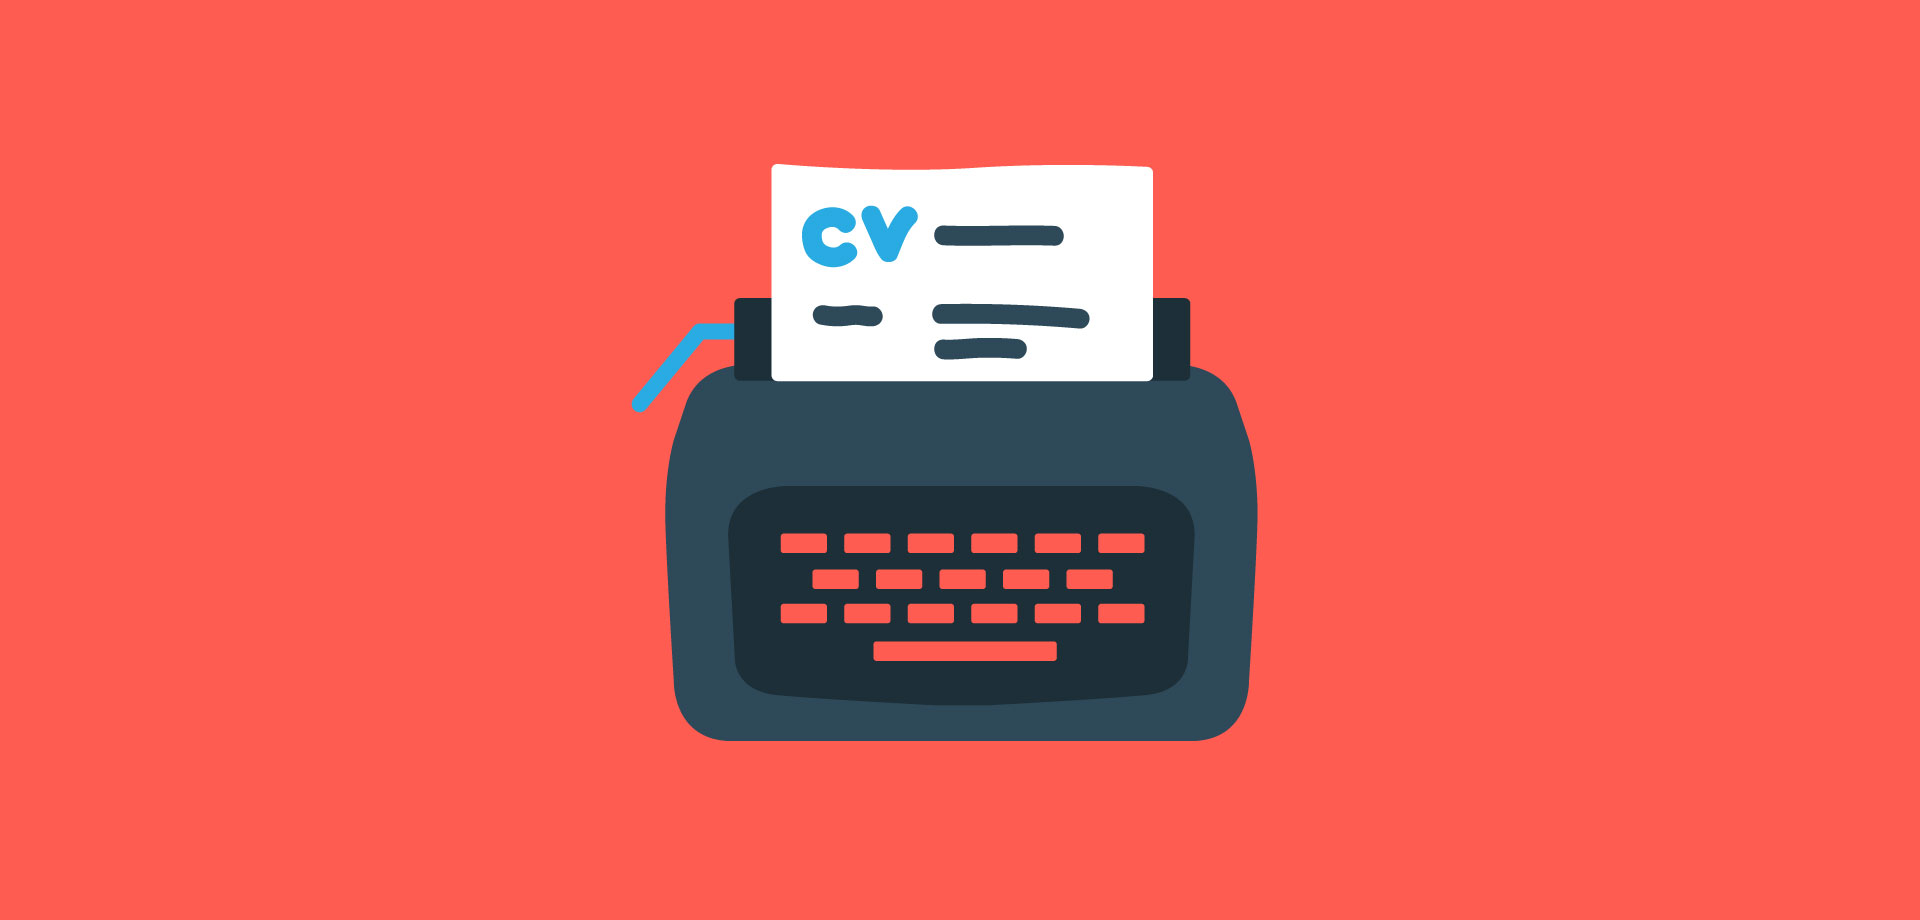 5 CV tips to writing the perfect CV typewriter animation - Magnet.me Guide